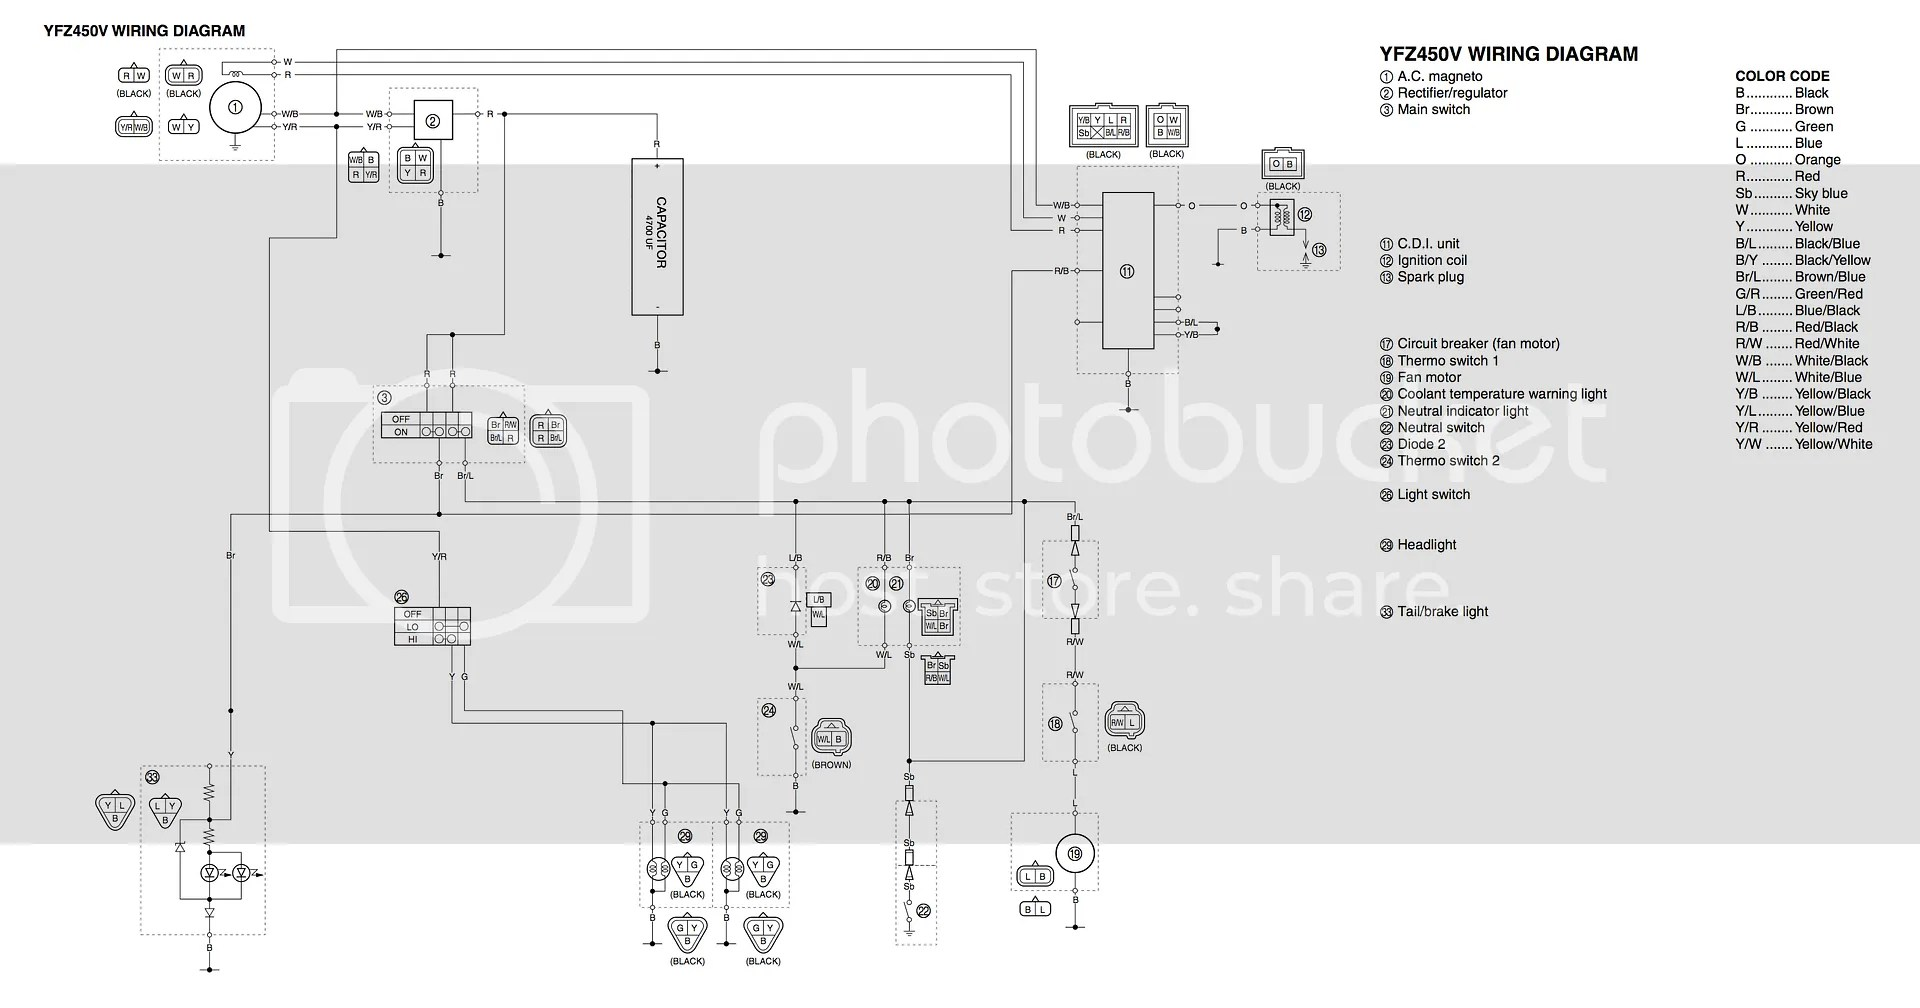 05 yfz 450 wiring diagram for vw dune buggy free schematic 2005 library